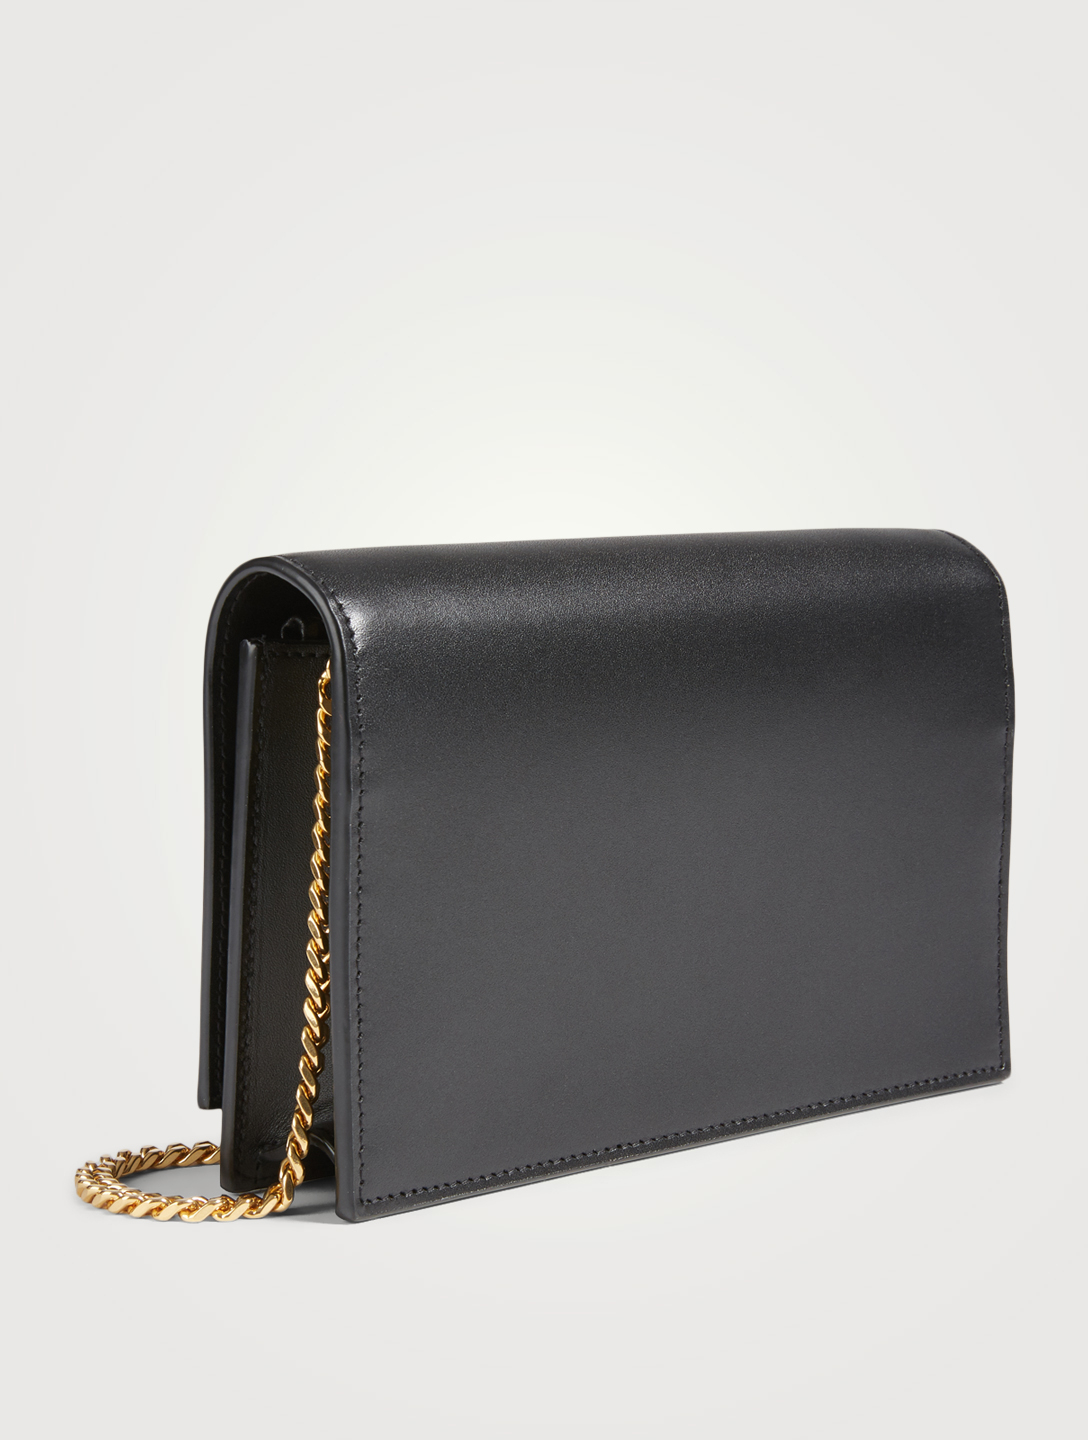 SAINT LAURENT Kate YSL Monogram Leather Chain Wallet Bag Women's Black